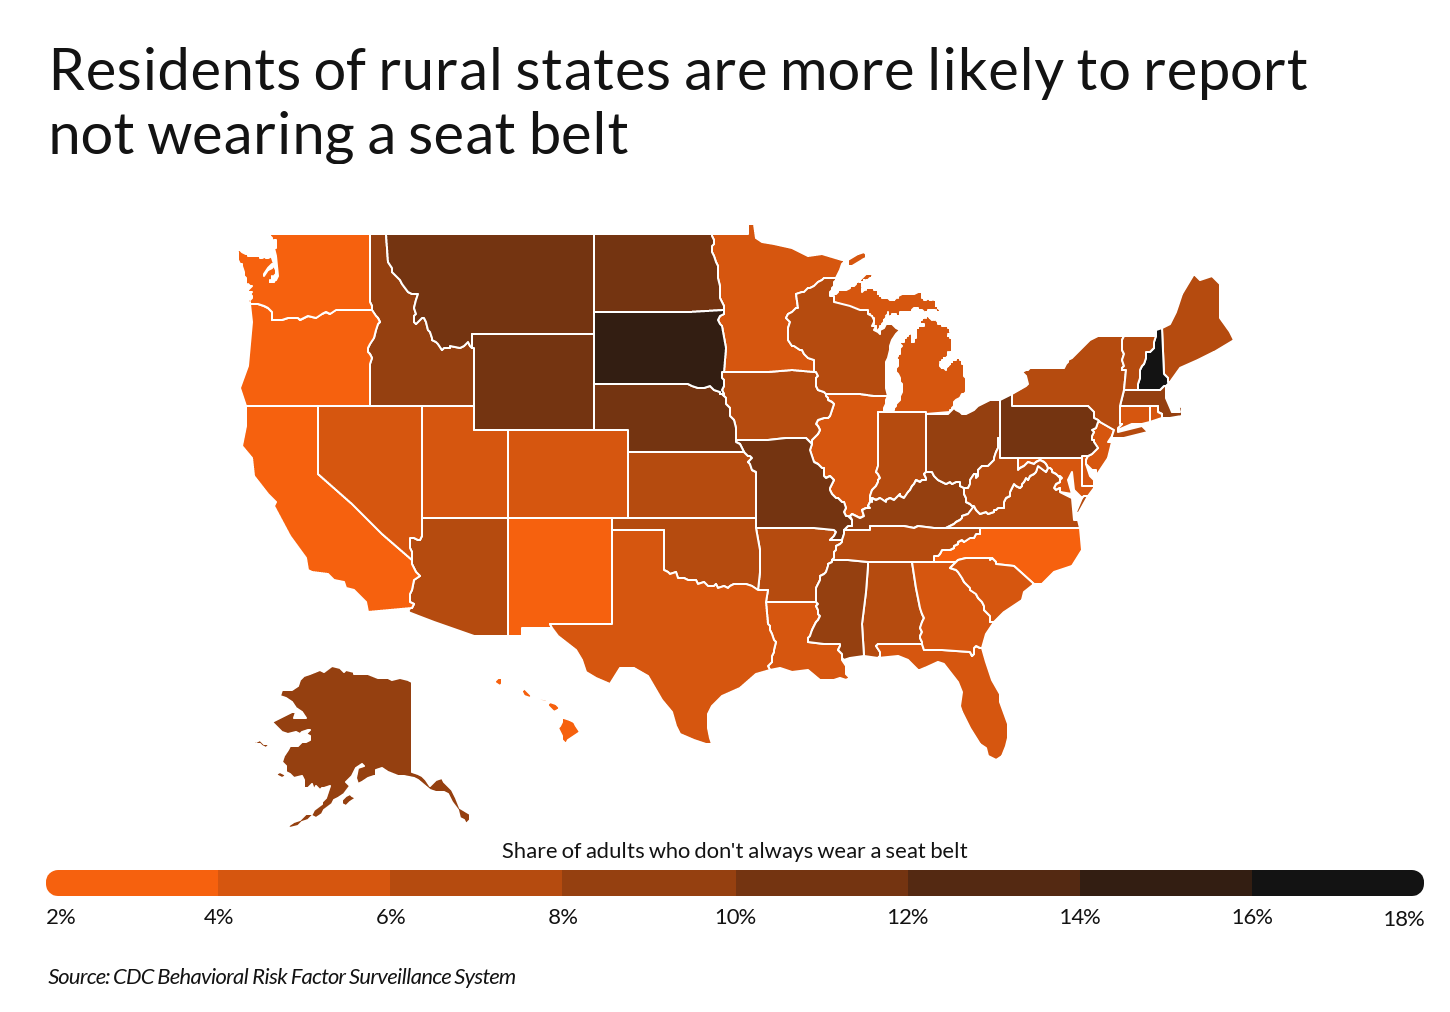 Heatmap showing U.S. states with highest reported rates of not wearing seat belts